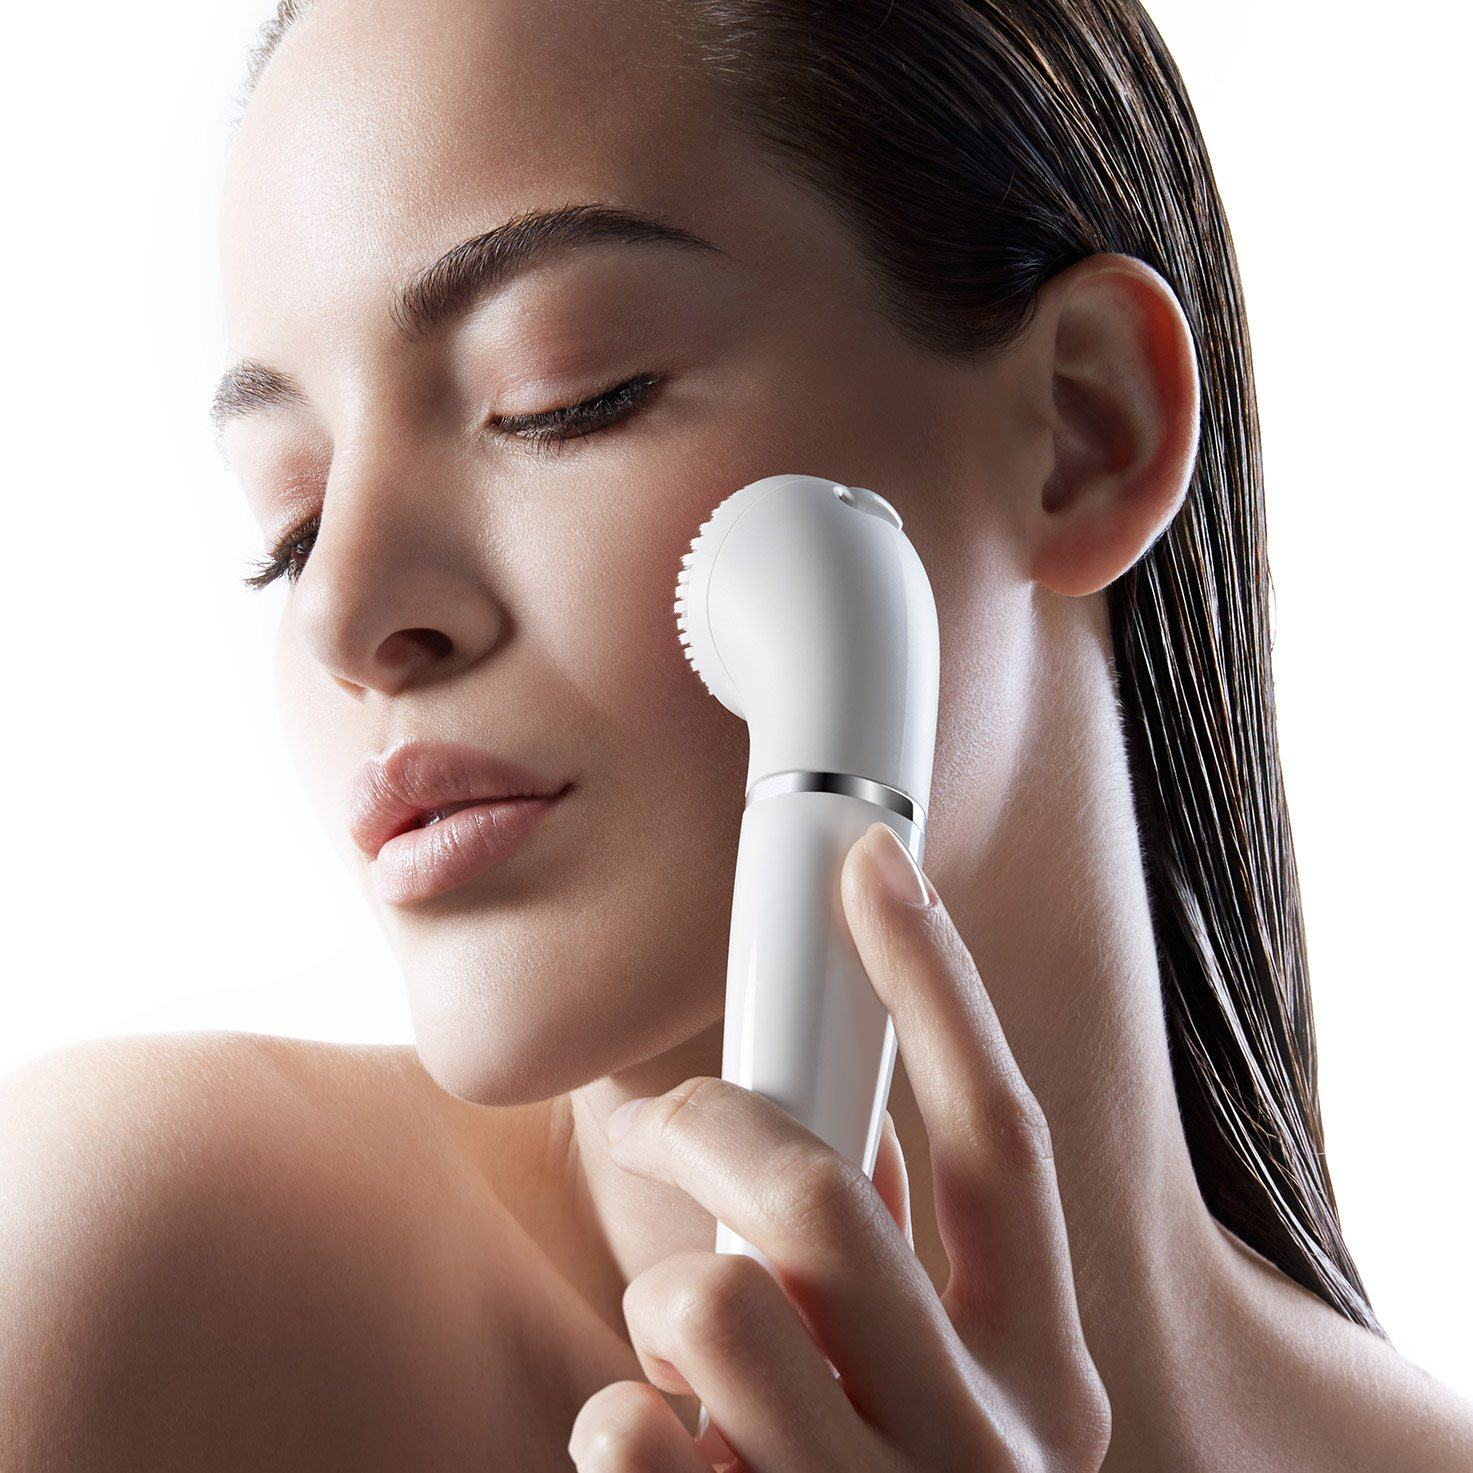 Braun Face 830 Premium Edition - facial epilator & facial cleansing brush with micro-oscillations - in use